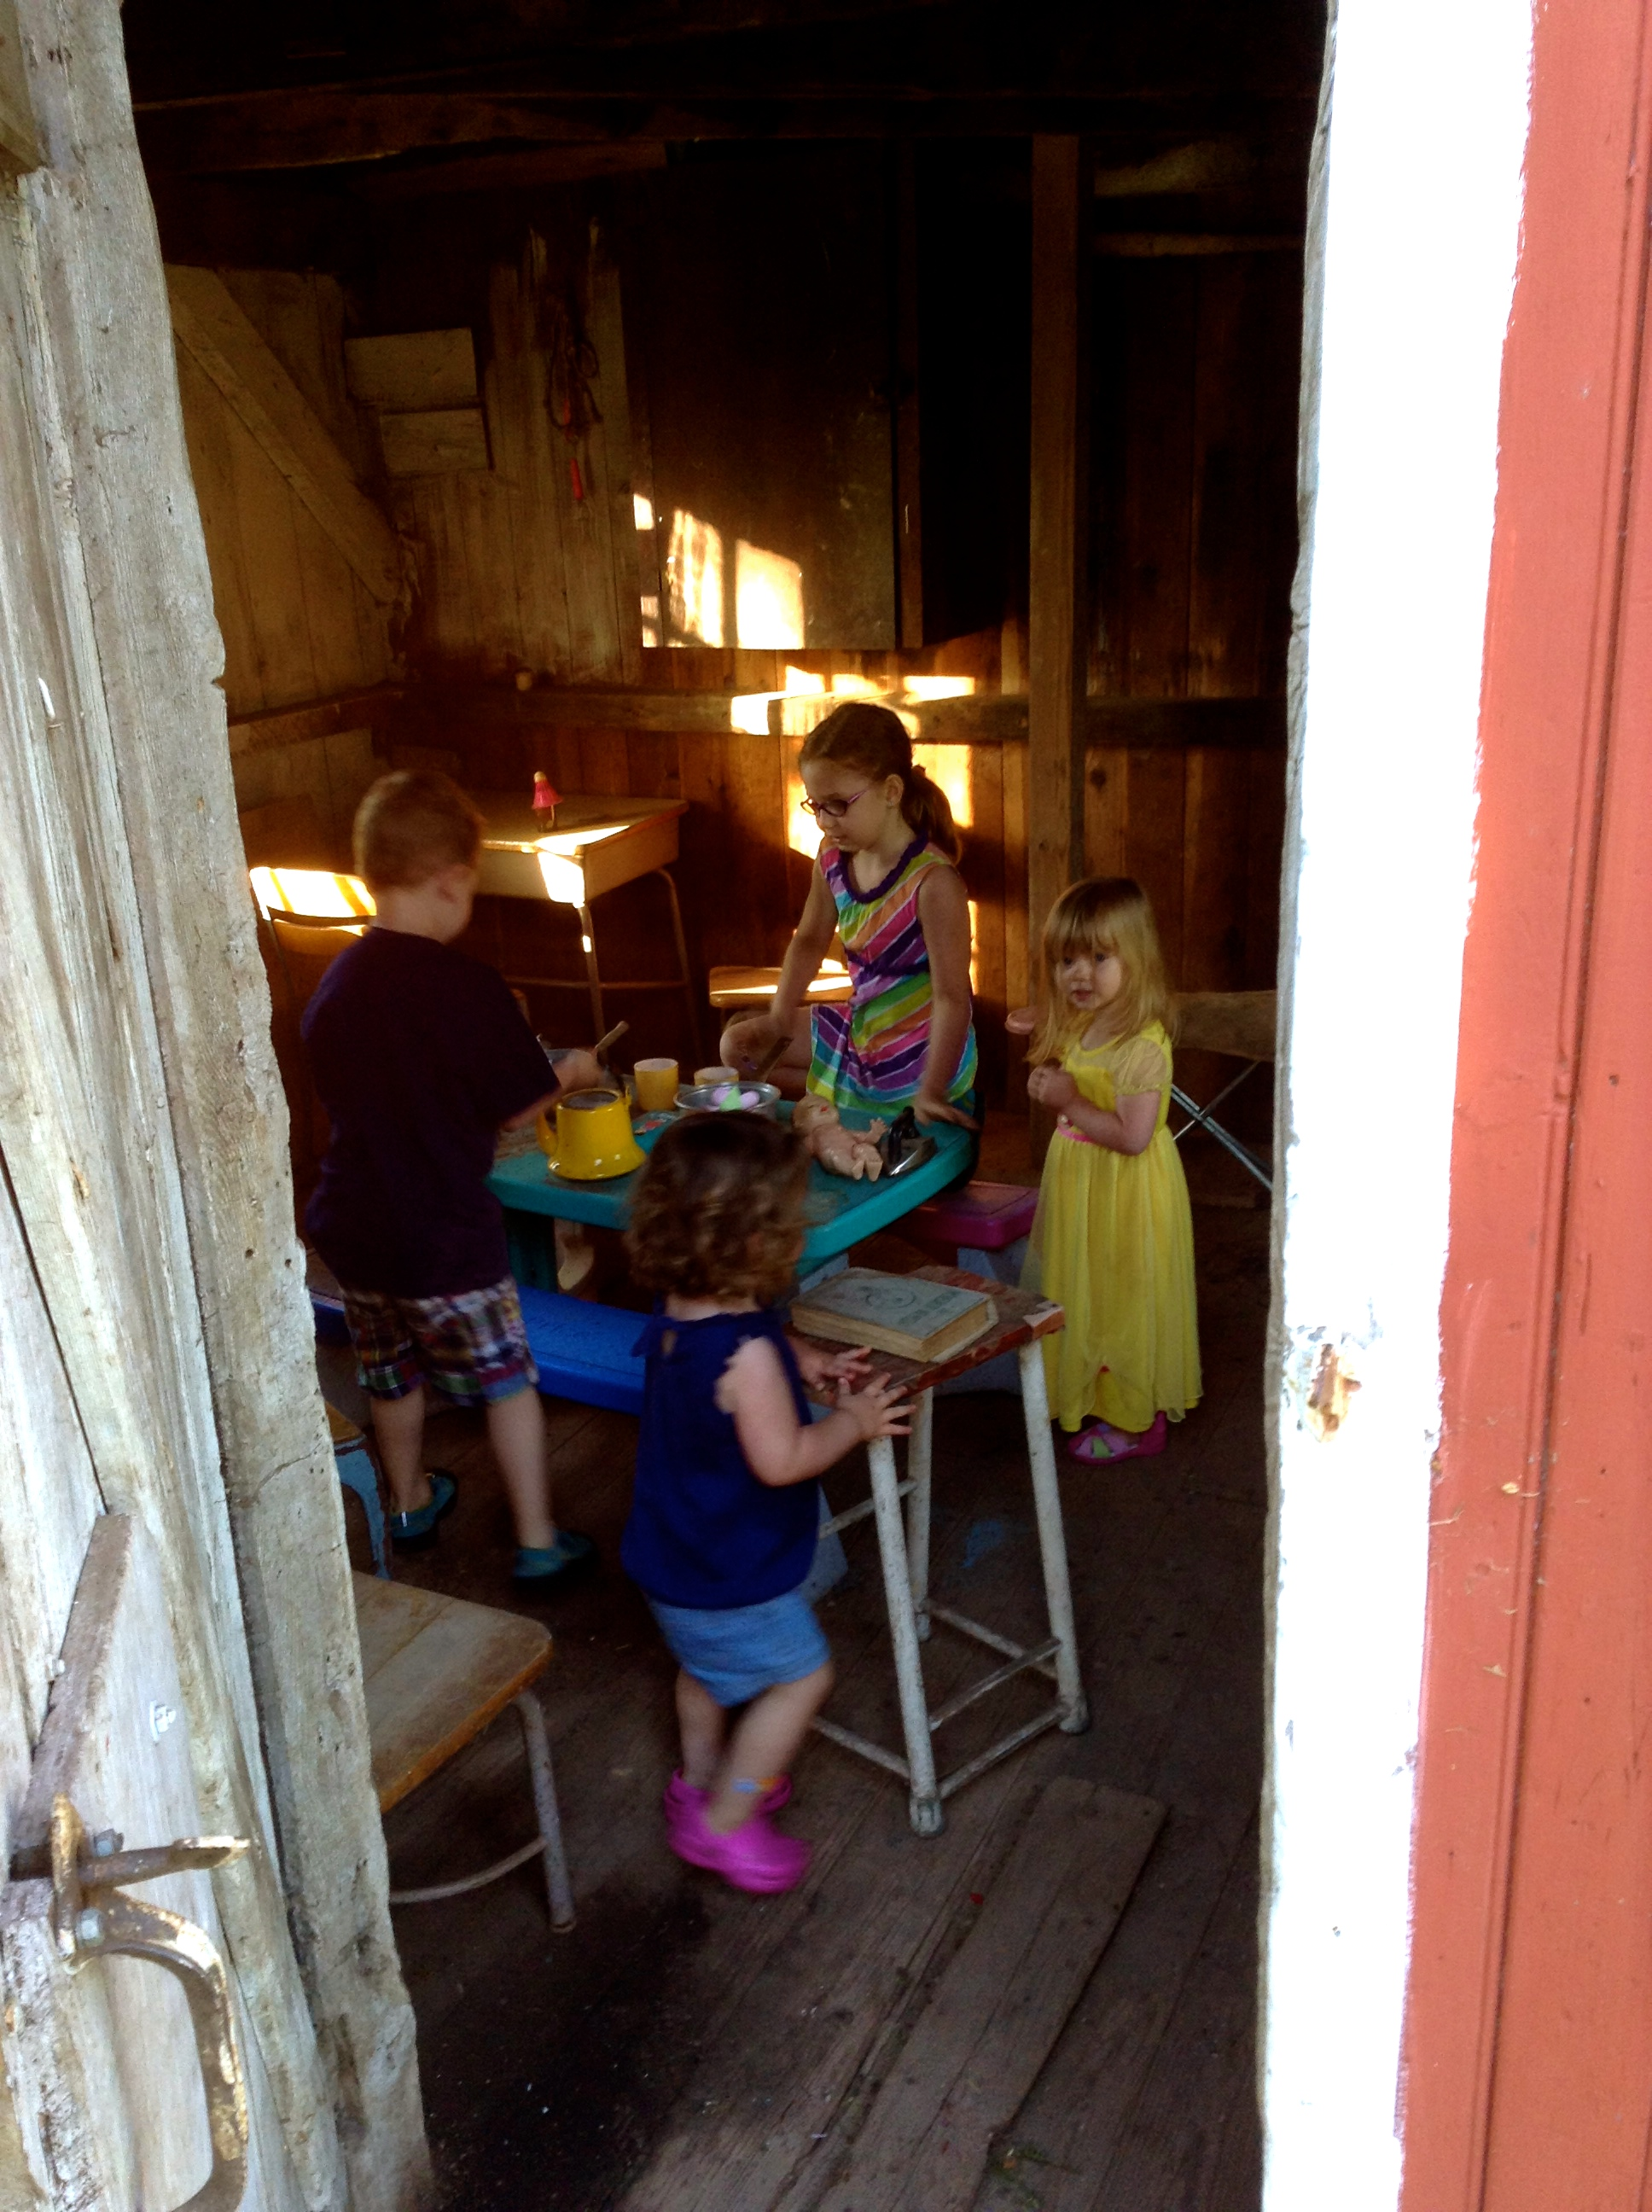 A school house play room on the farm. Playing with our new friend, sweet little Caroline.